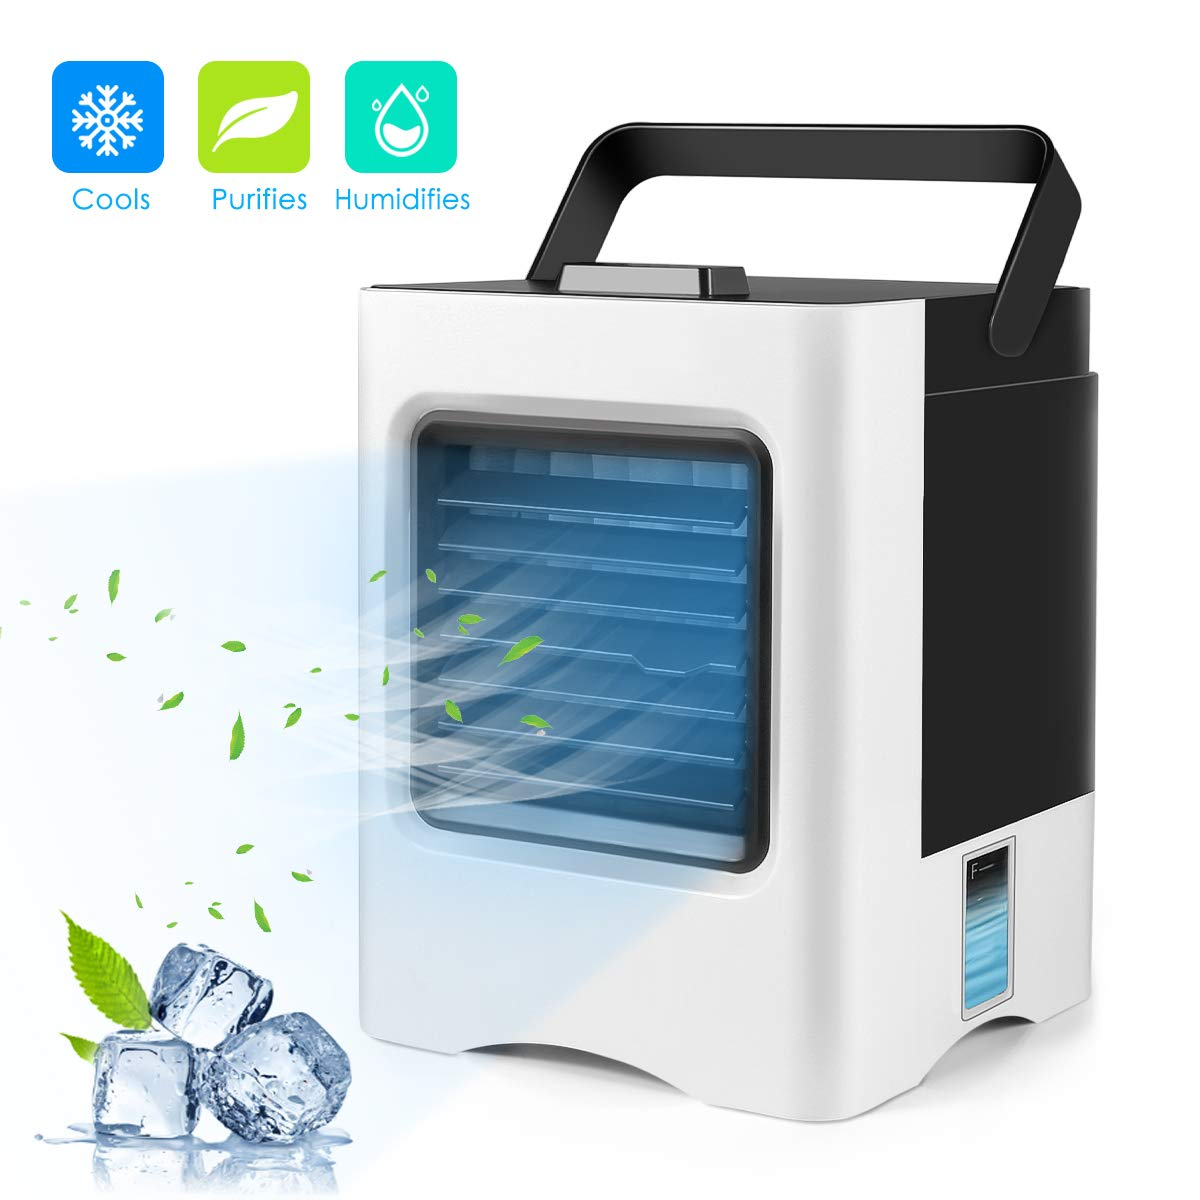 Air Conditioner <font><b>Fan</b></font> 4 in 1 Personal <font><b>USB</b></font> Air Cooler Mini Purifier Humidifier with LED Lights Rechargeable <font><b>Fan</b></font> For Home Desk <font><b>Fans</b></font> image